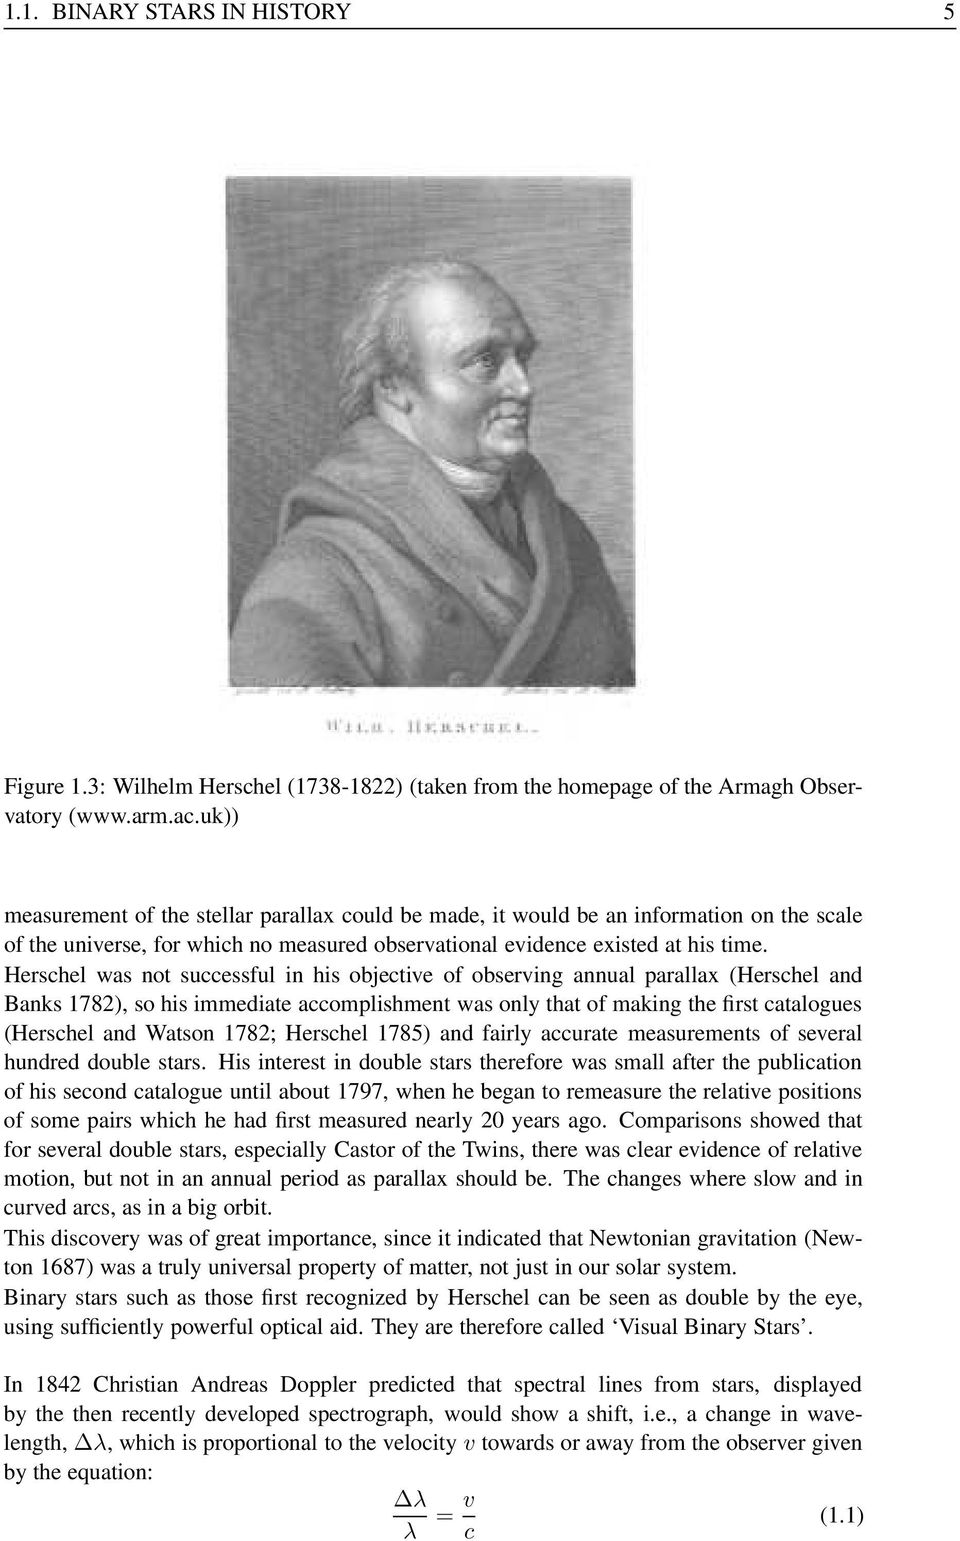 Herschel was not successful in his objective of observing annual parallax (Herschel and Banks 1782), so his immediate accomplishment was only that of making the first catalogues (Herschel and Watson